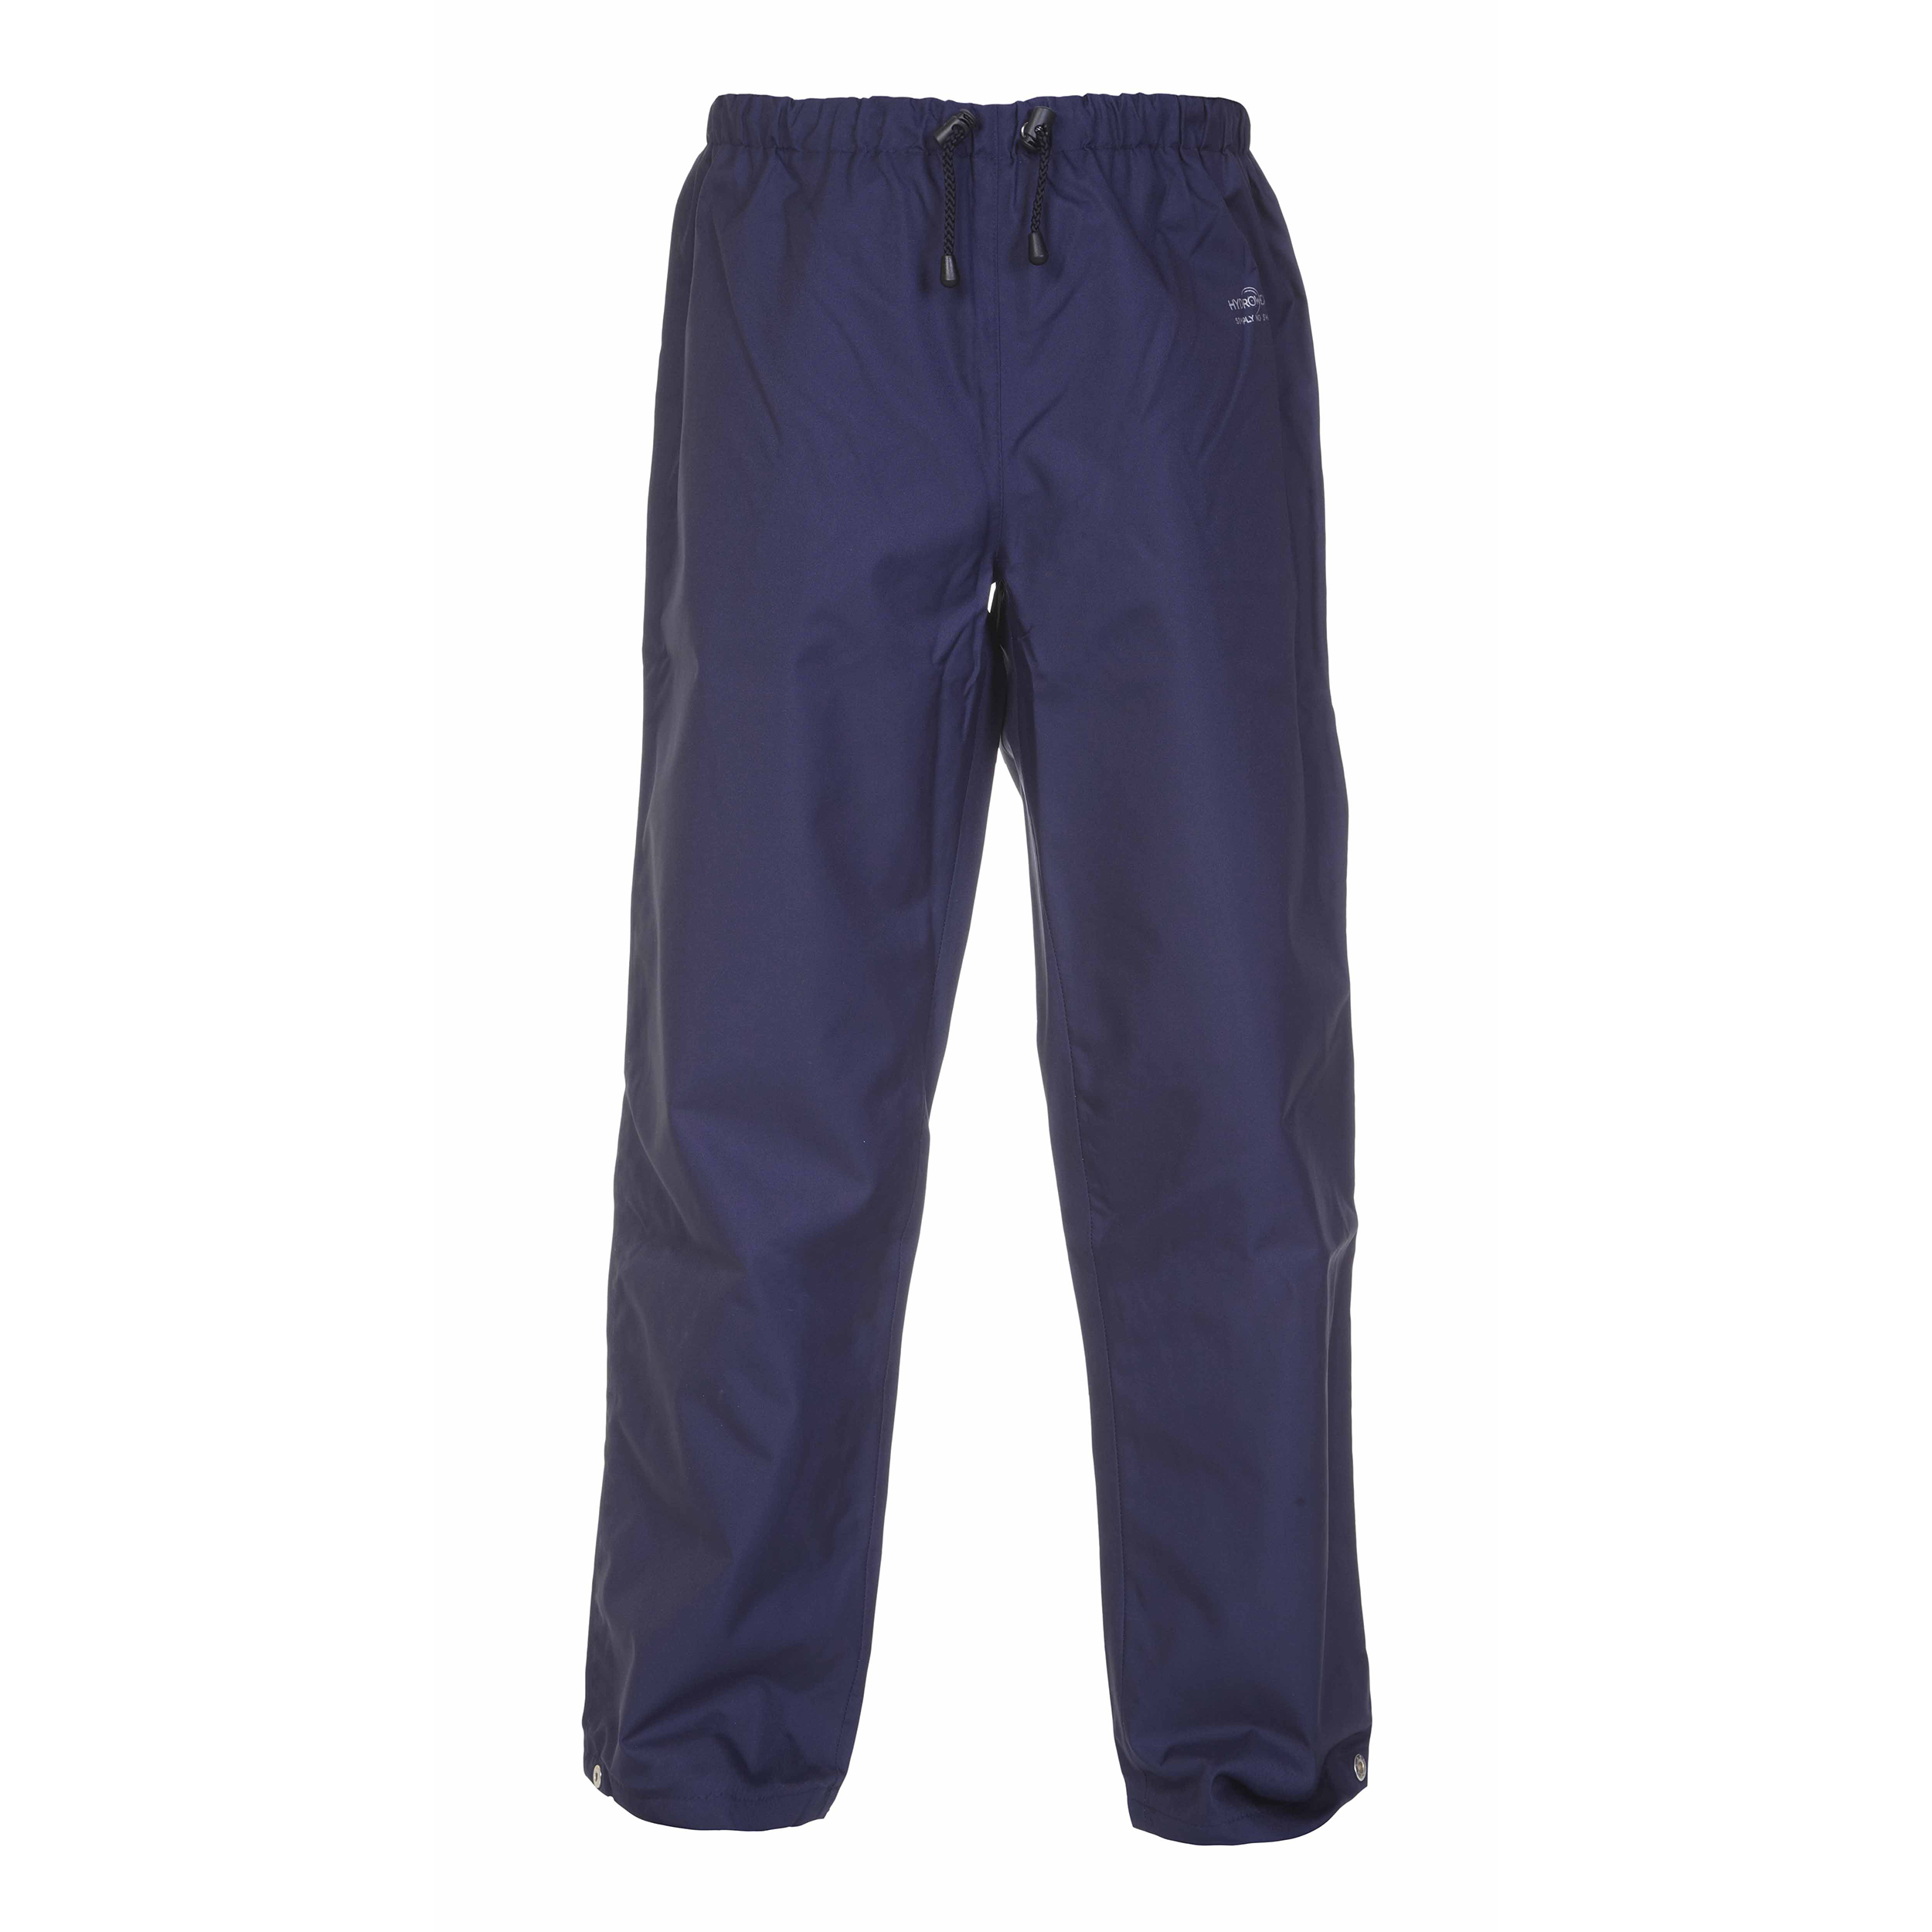 Limitless Hydowear Utrecht SNS Waterproof Trousers 4XL Navy Ref HYD072350N4XL *Up to 3 Day Leadtime*